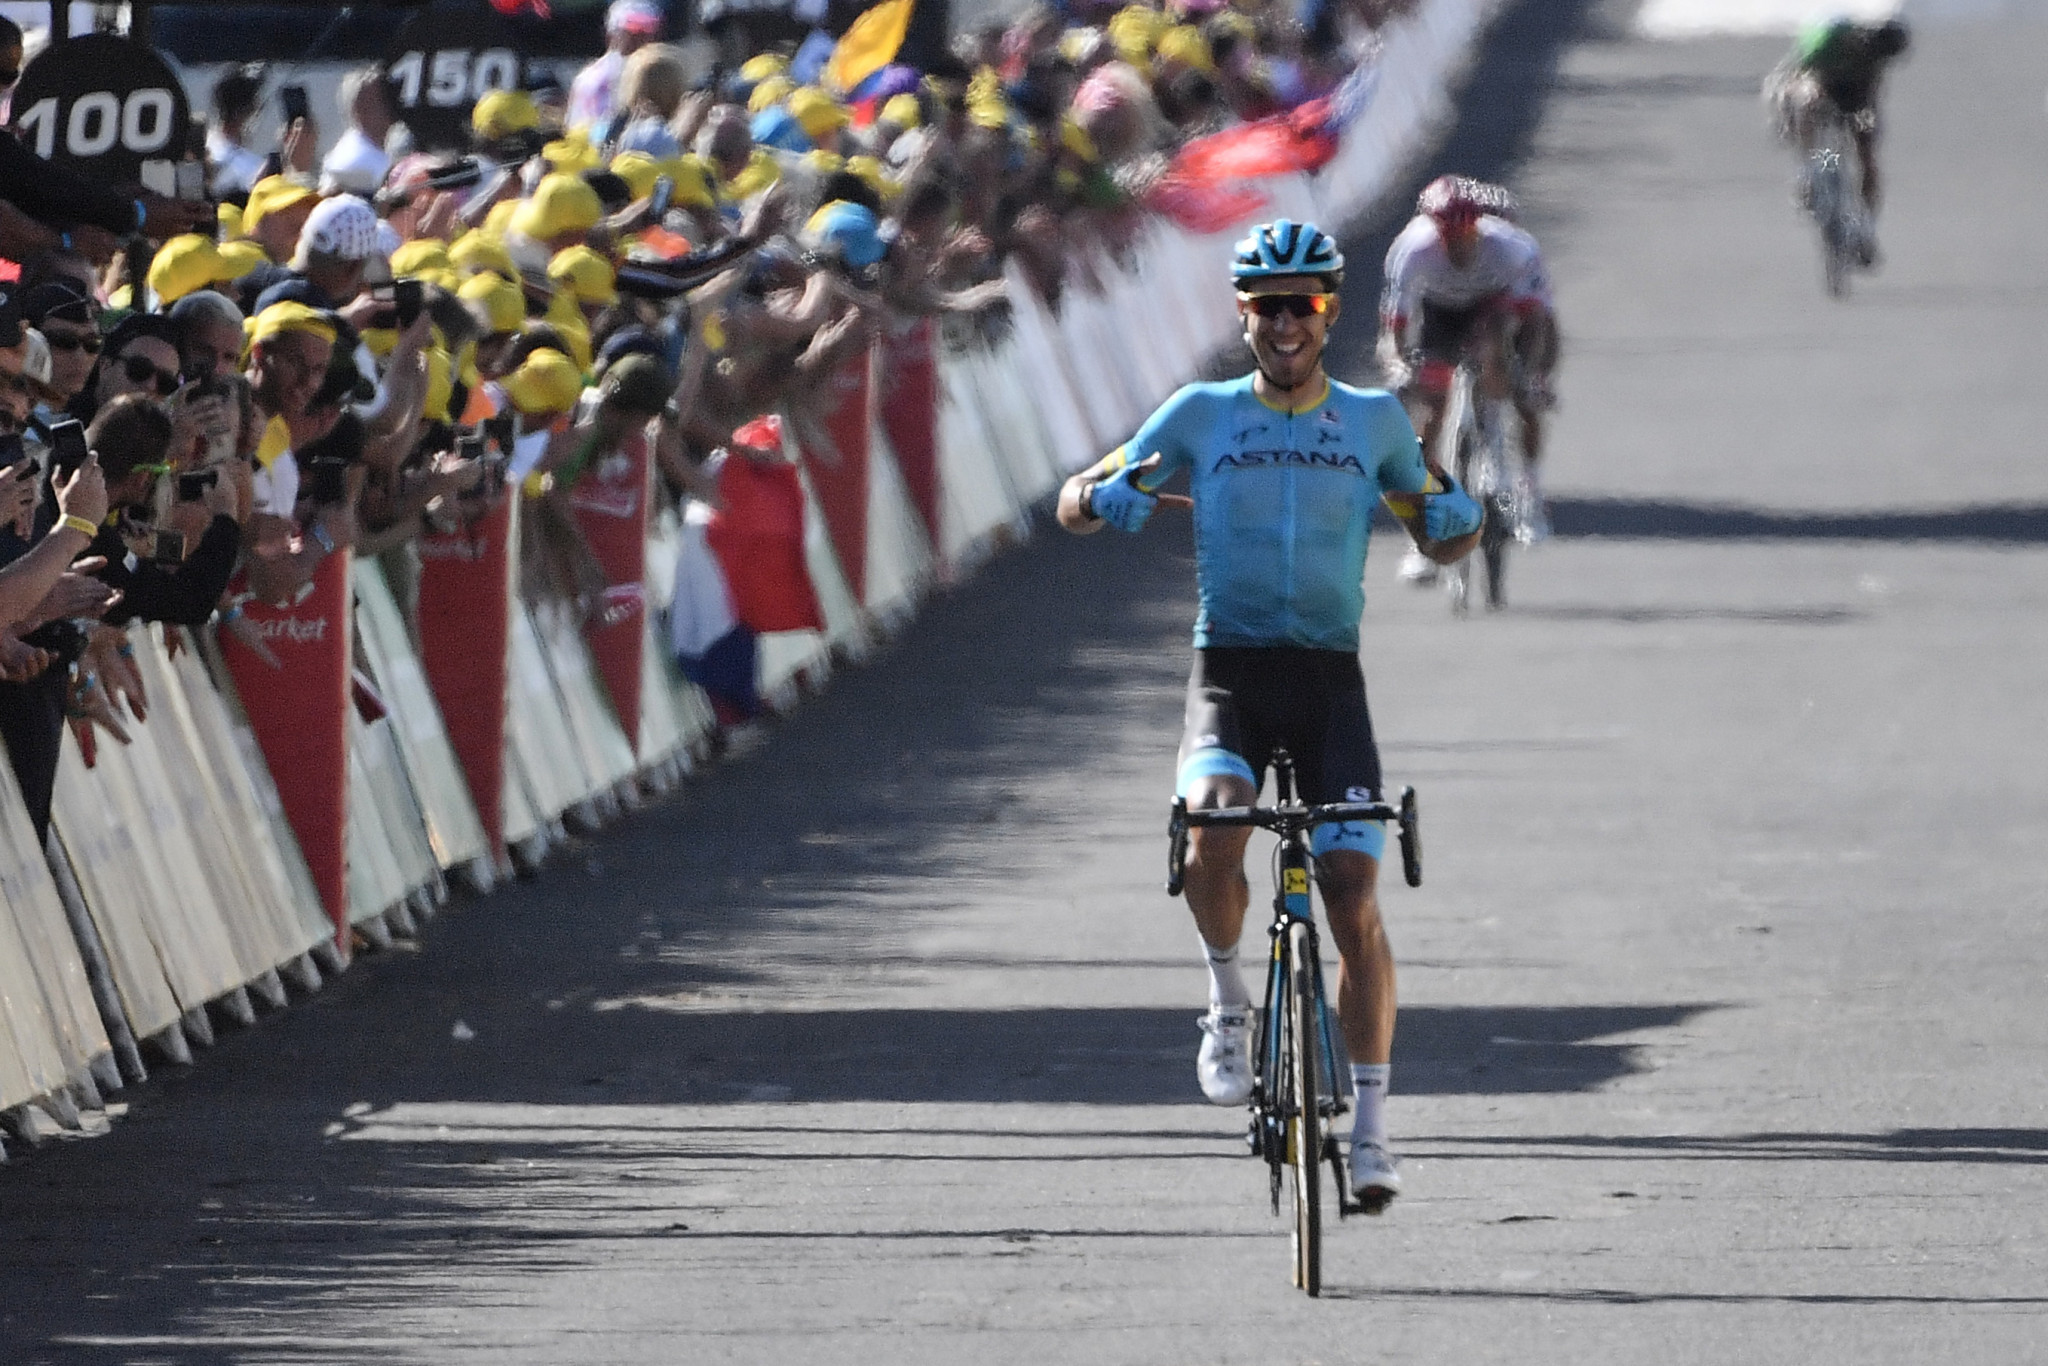 Fraile wins stage 14 from breakaway as Tour de France contenders finish together